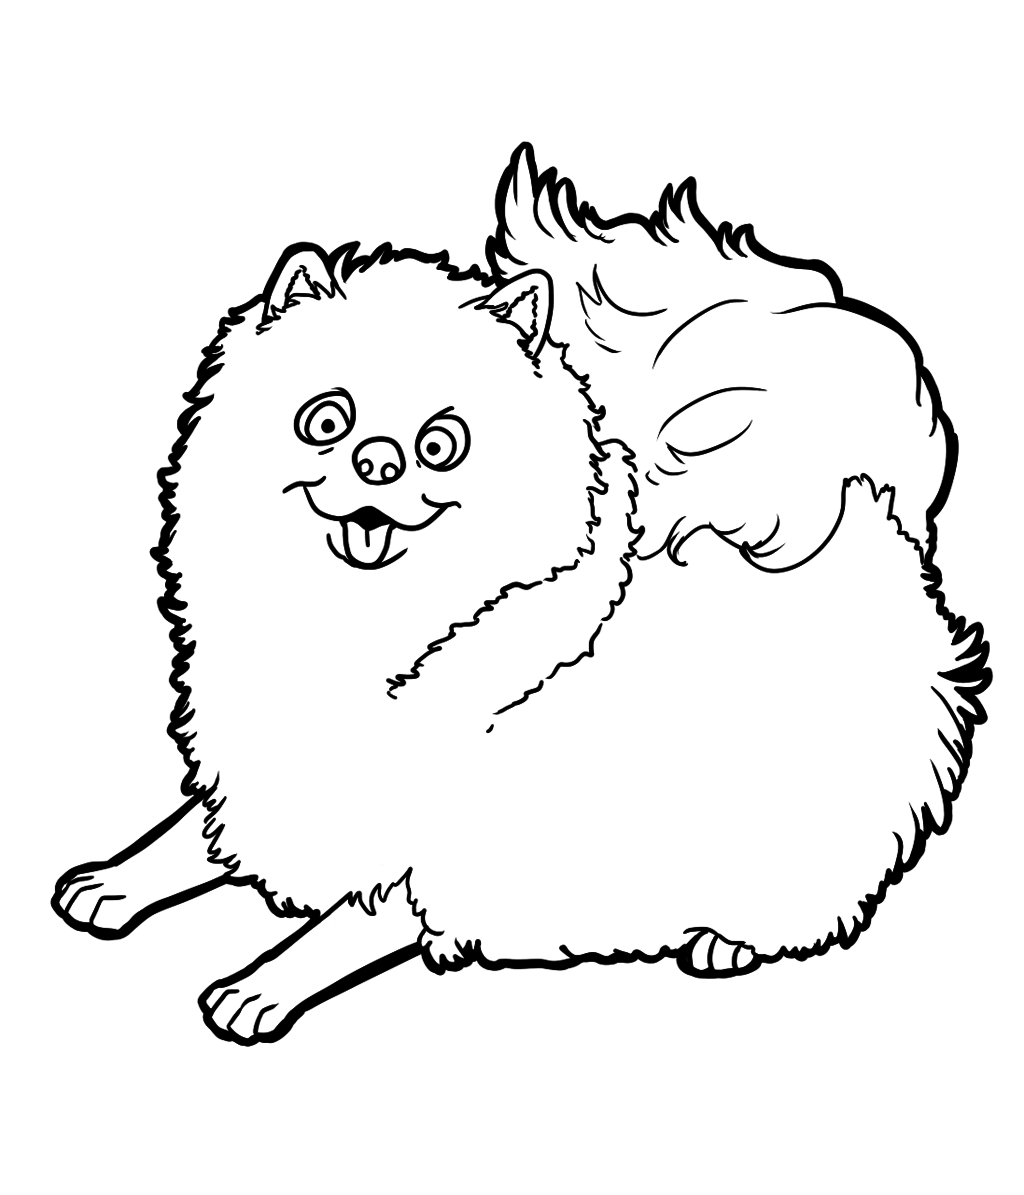 Pomeranian Coloring Pages Puppy Coloring Pages Dog Coloring Page Dog Coloring Book [ 1195 x 1024 Pixel ]